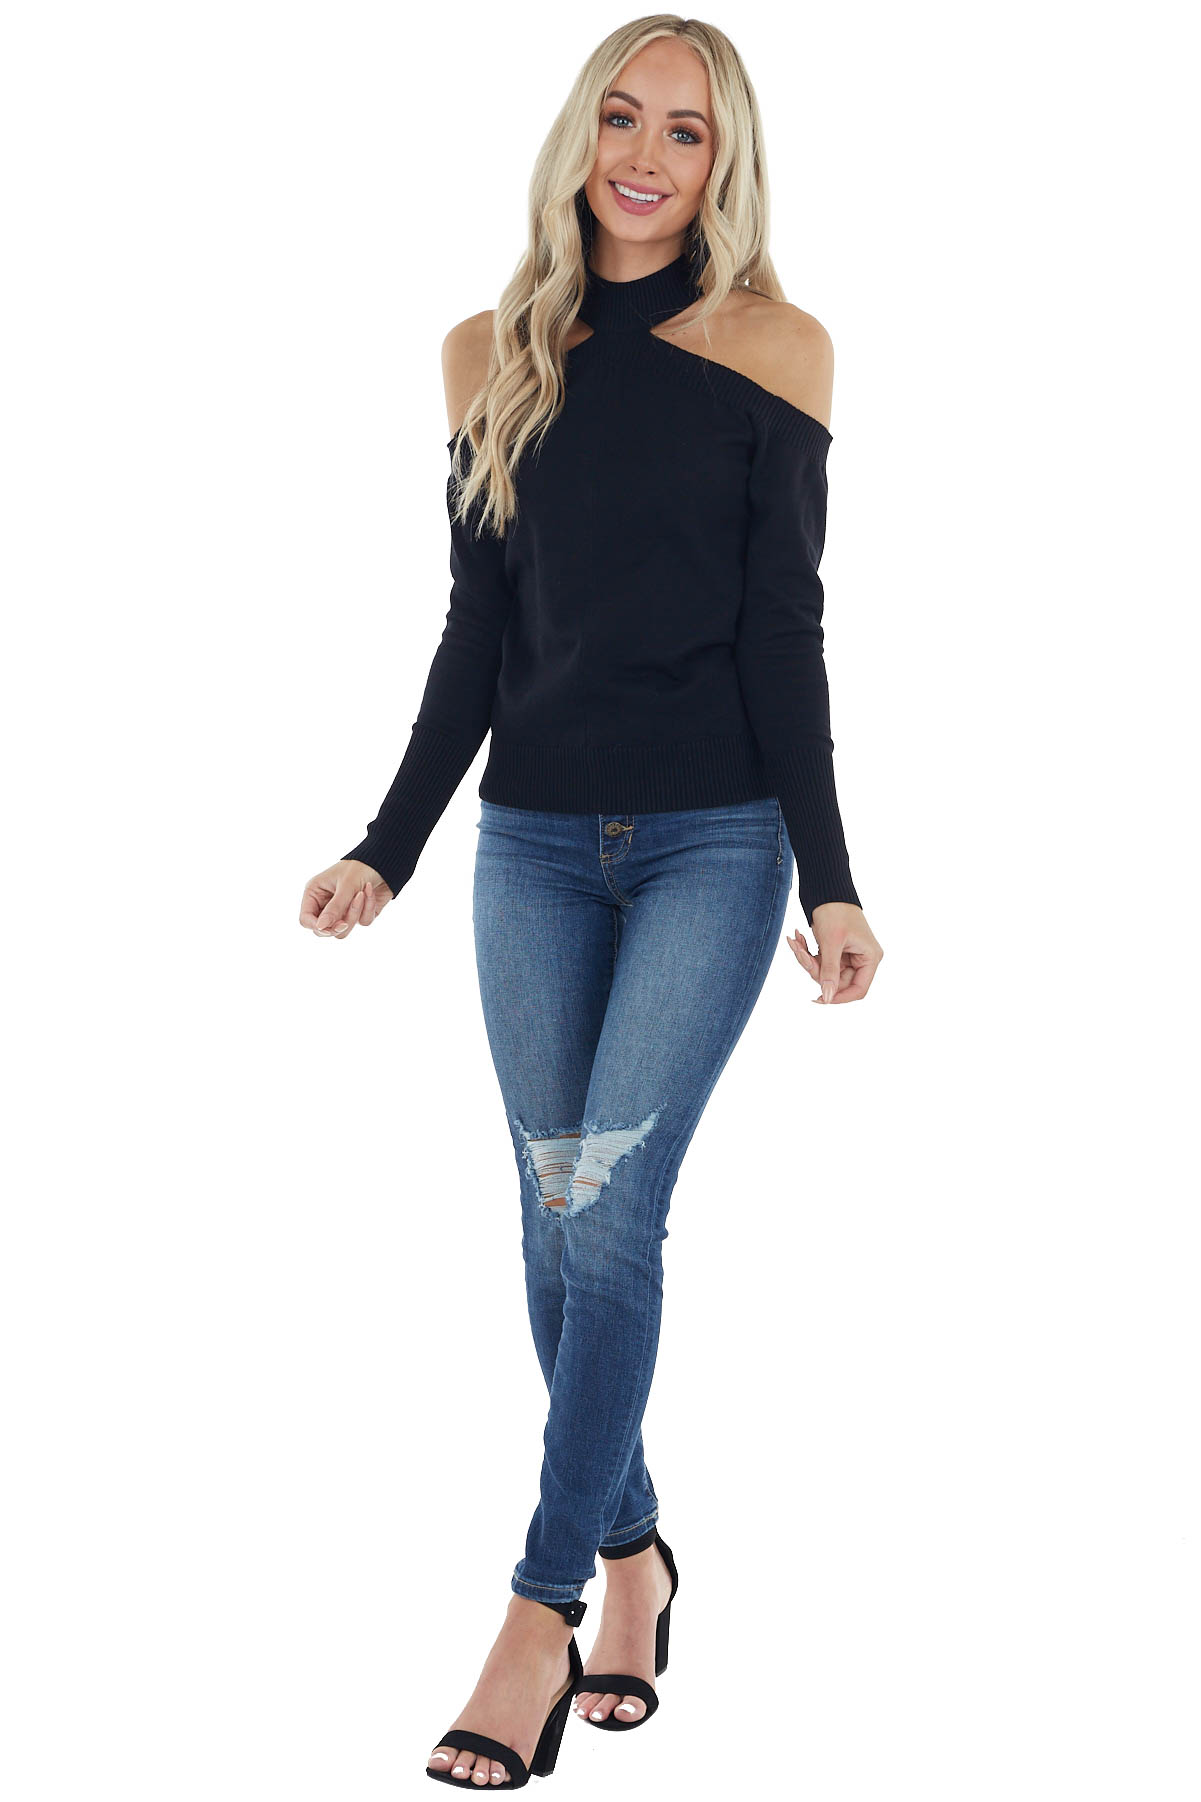 Black Mock Neck Soft Stretchy Knit Top with Cold Shoulders